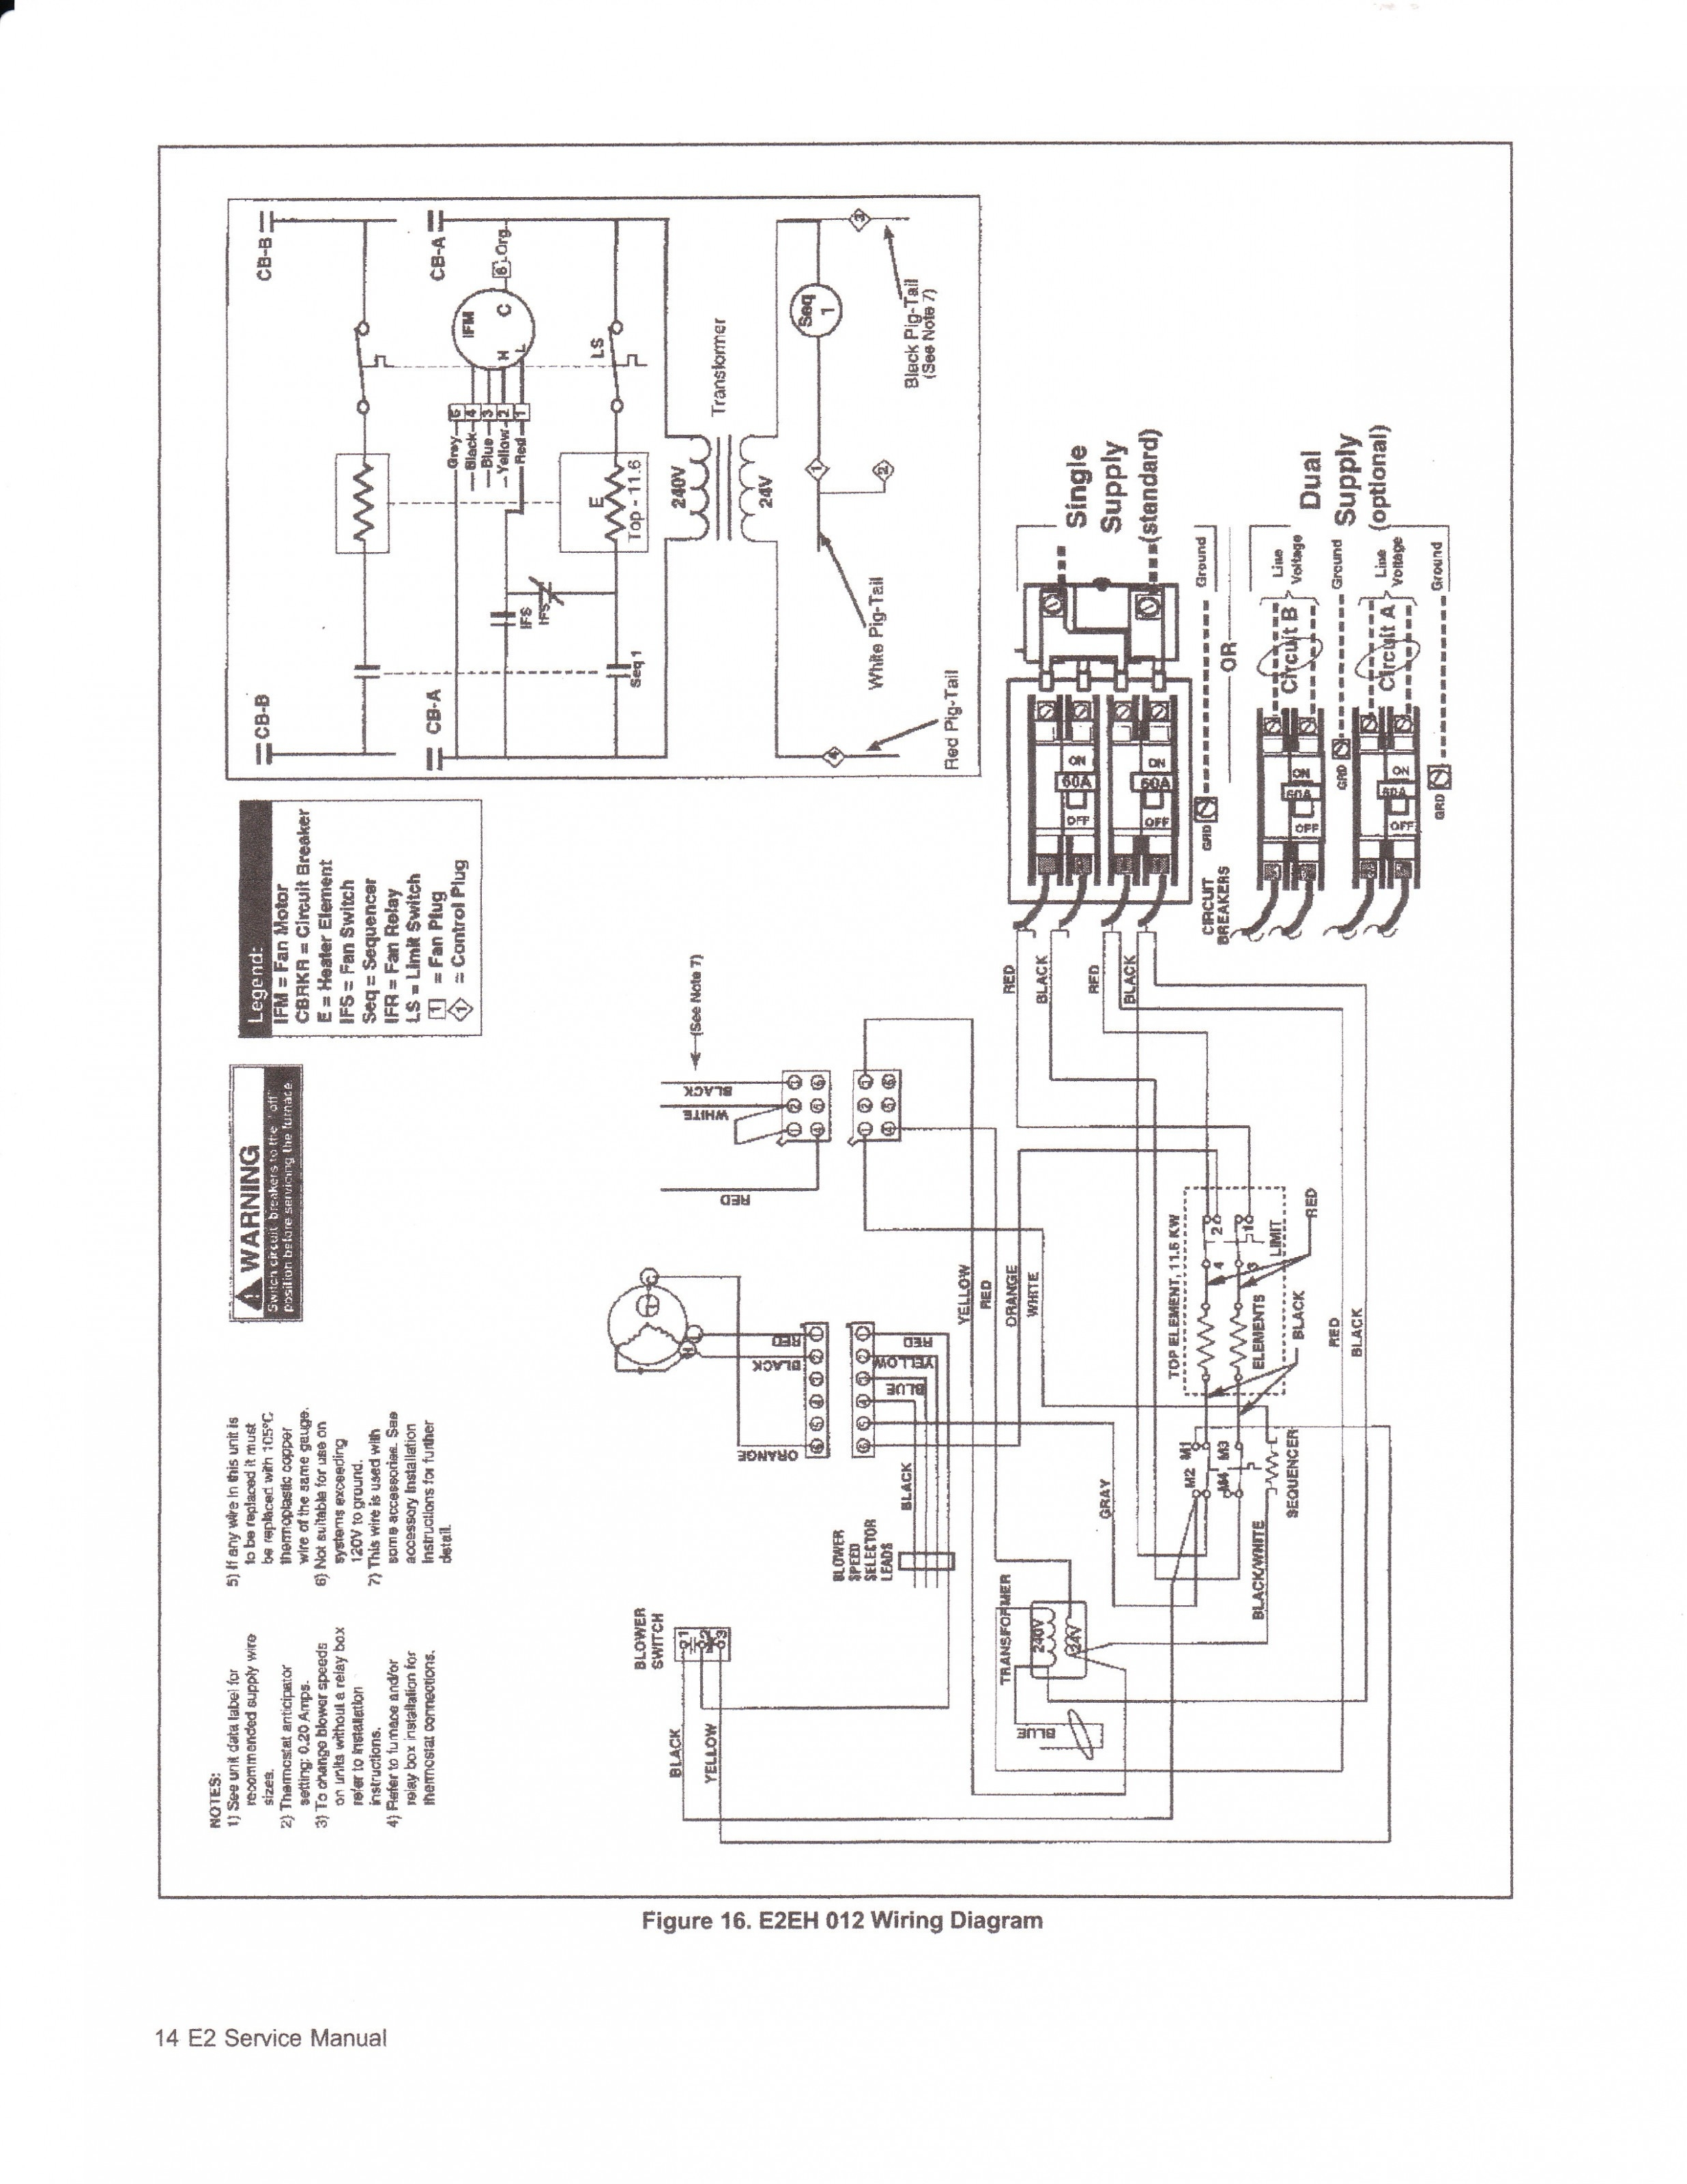 intertherm e2eb 015ha wiring diagram - typical electric furnace wiring  diagram new intertherm mobile home 11n